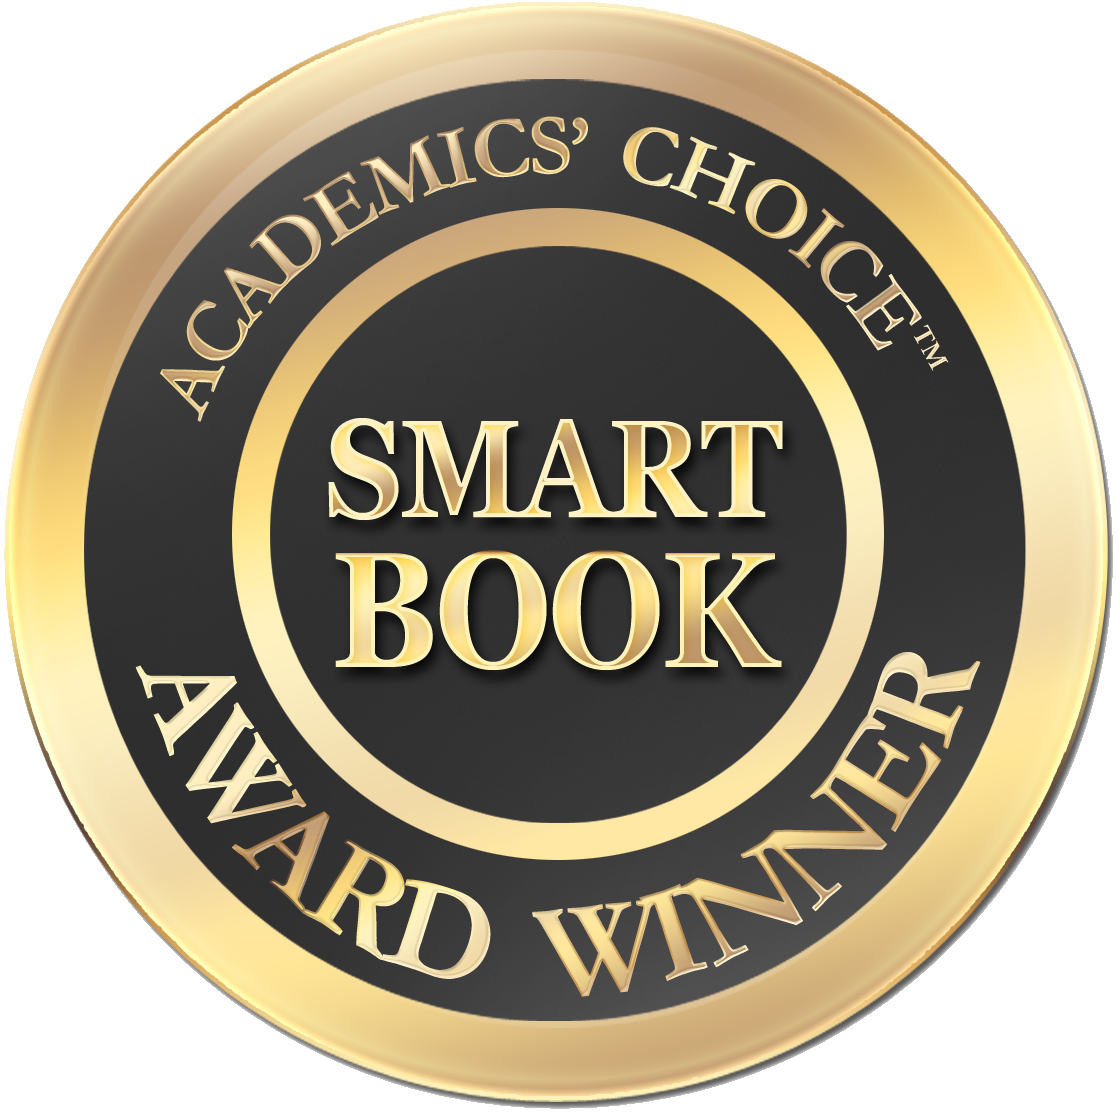 award-smart-book-lg-trans-38436.png